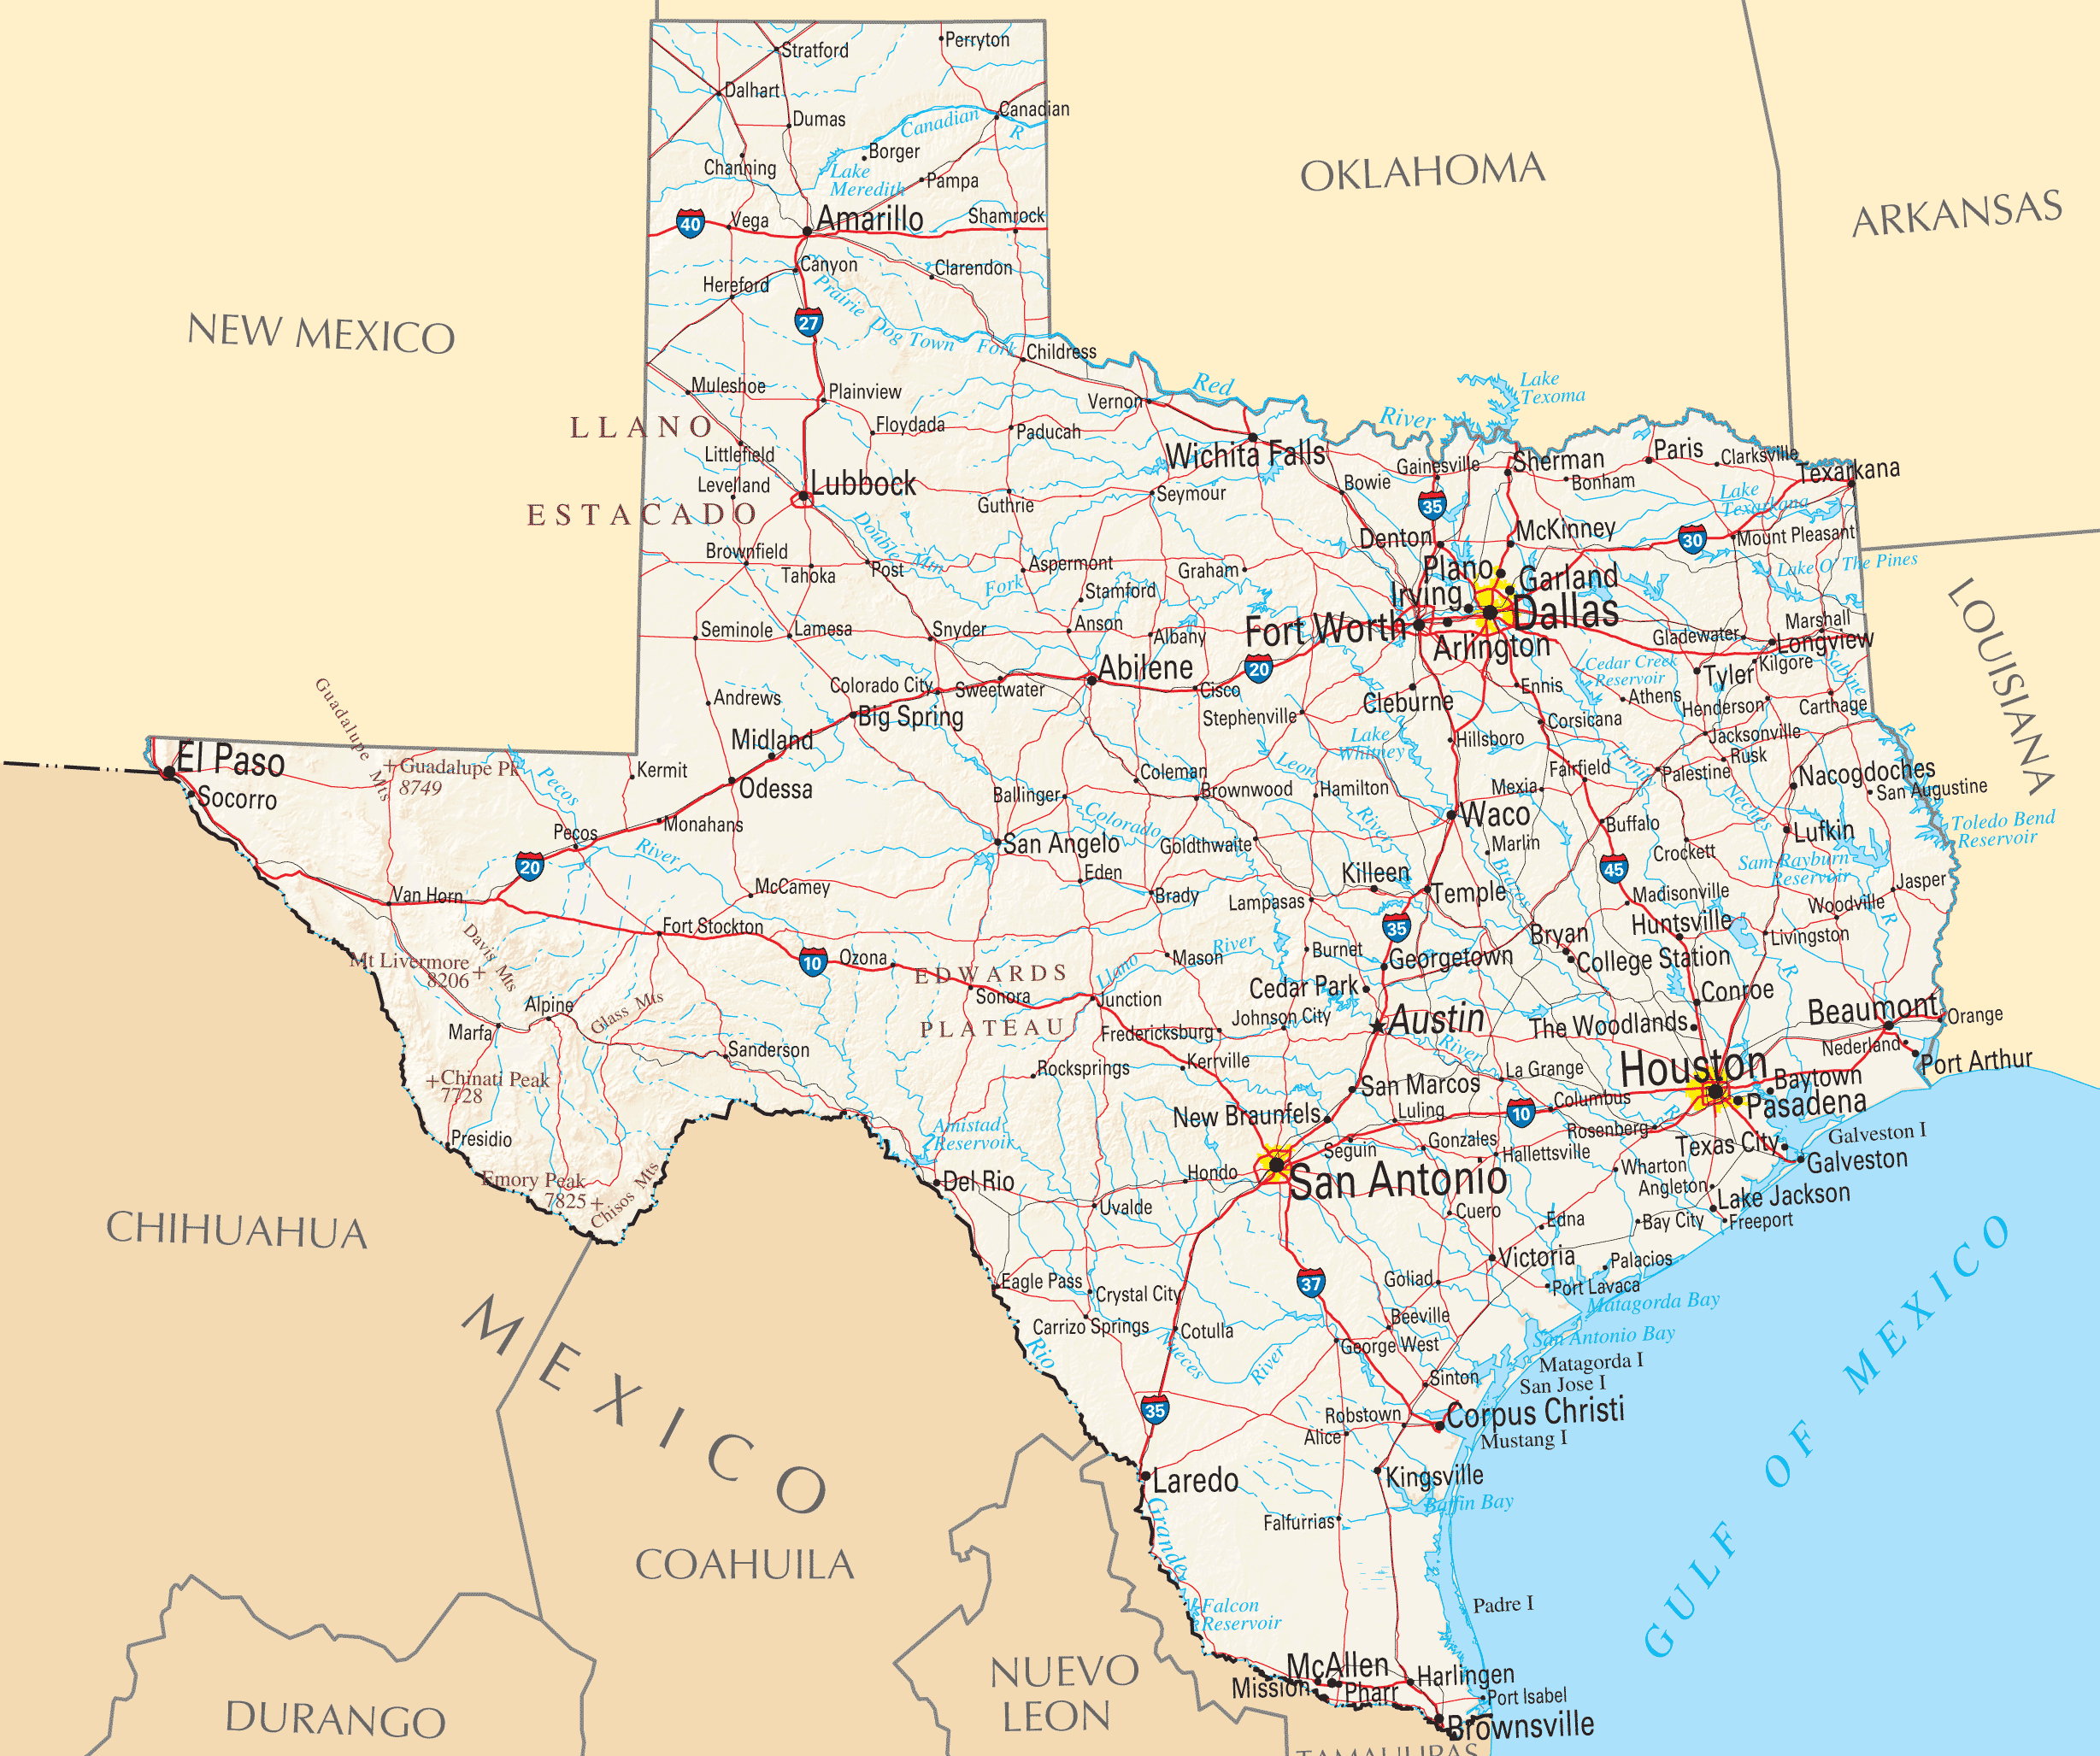 Map Of Texas Cities And Roads And Travel Information | Download Free - Texas Road Map With Cities And Towns